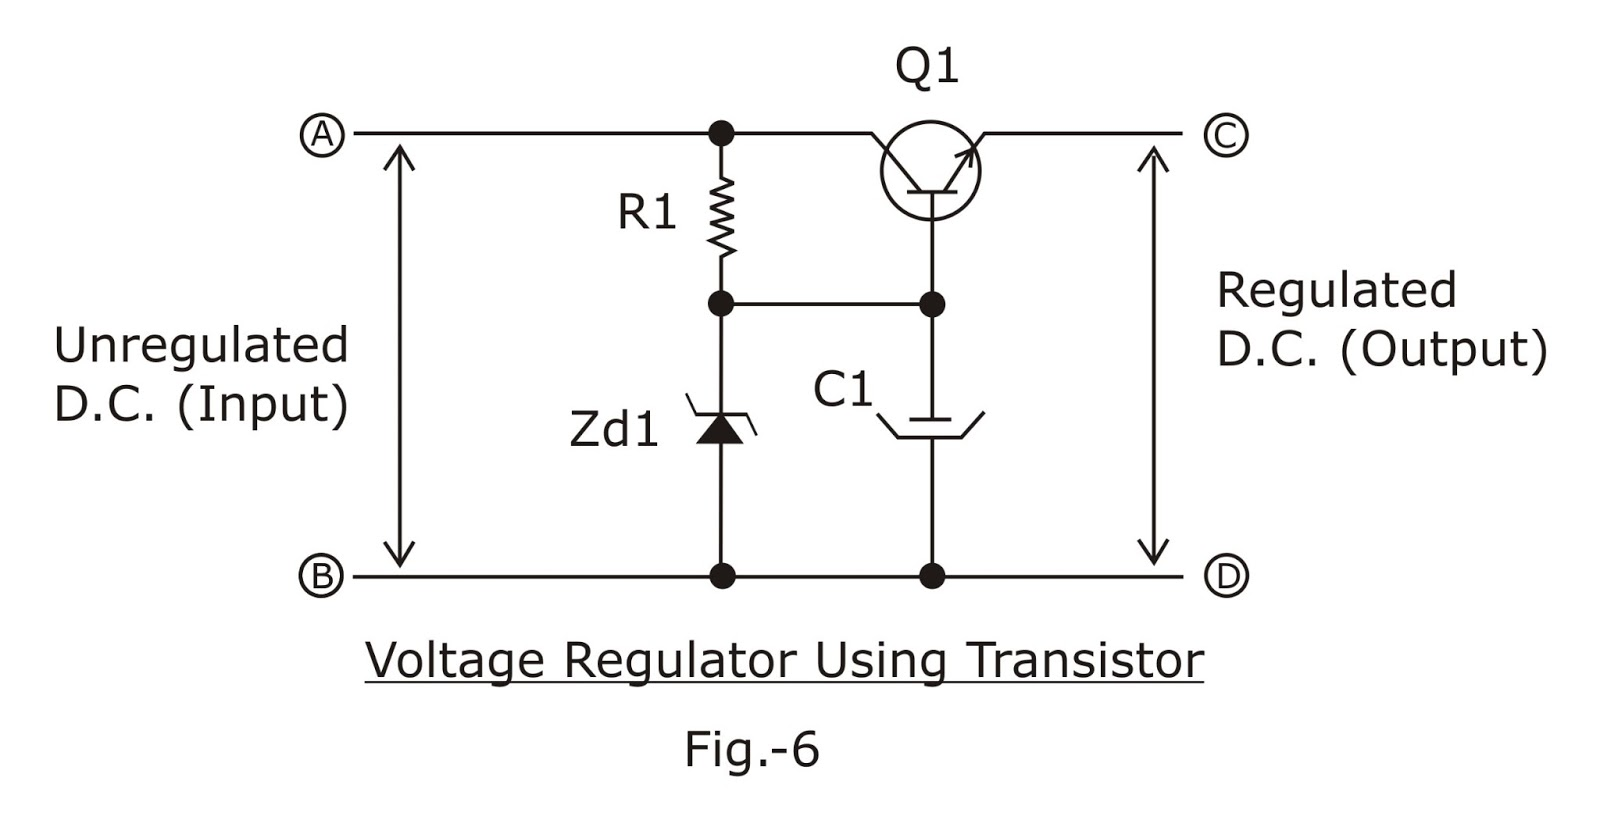 Electronic Circuits Transistor Regulator Circuit Can Adjustable Output Voltage The Above Is An Improved Version Of A In This Q1 Series Pass Element Collector